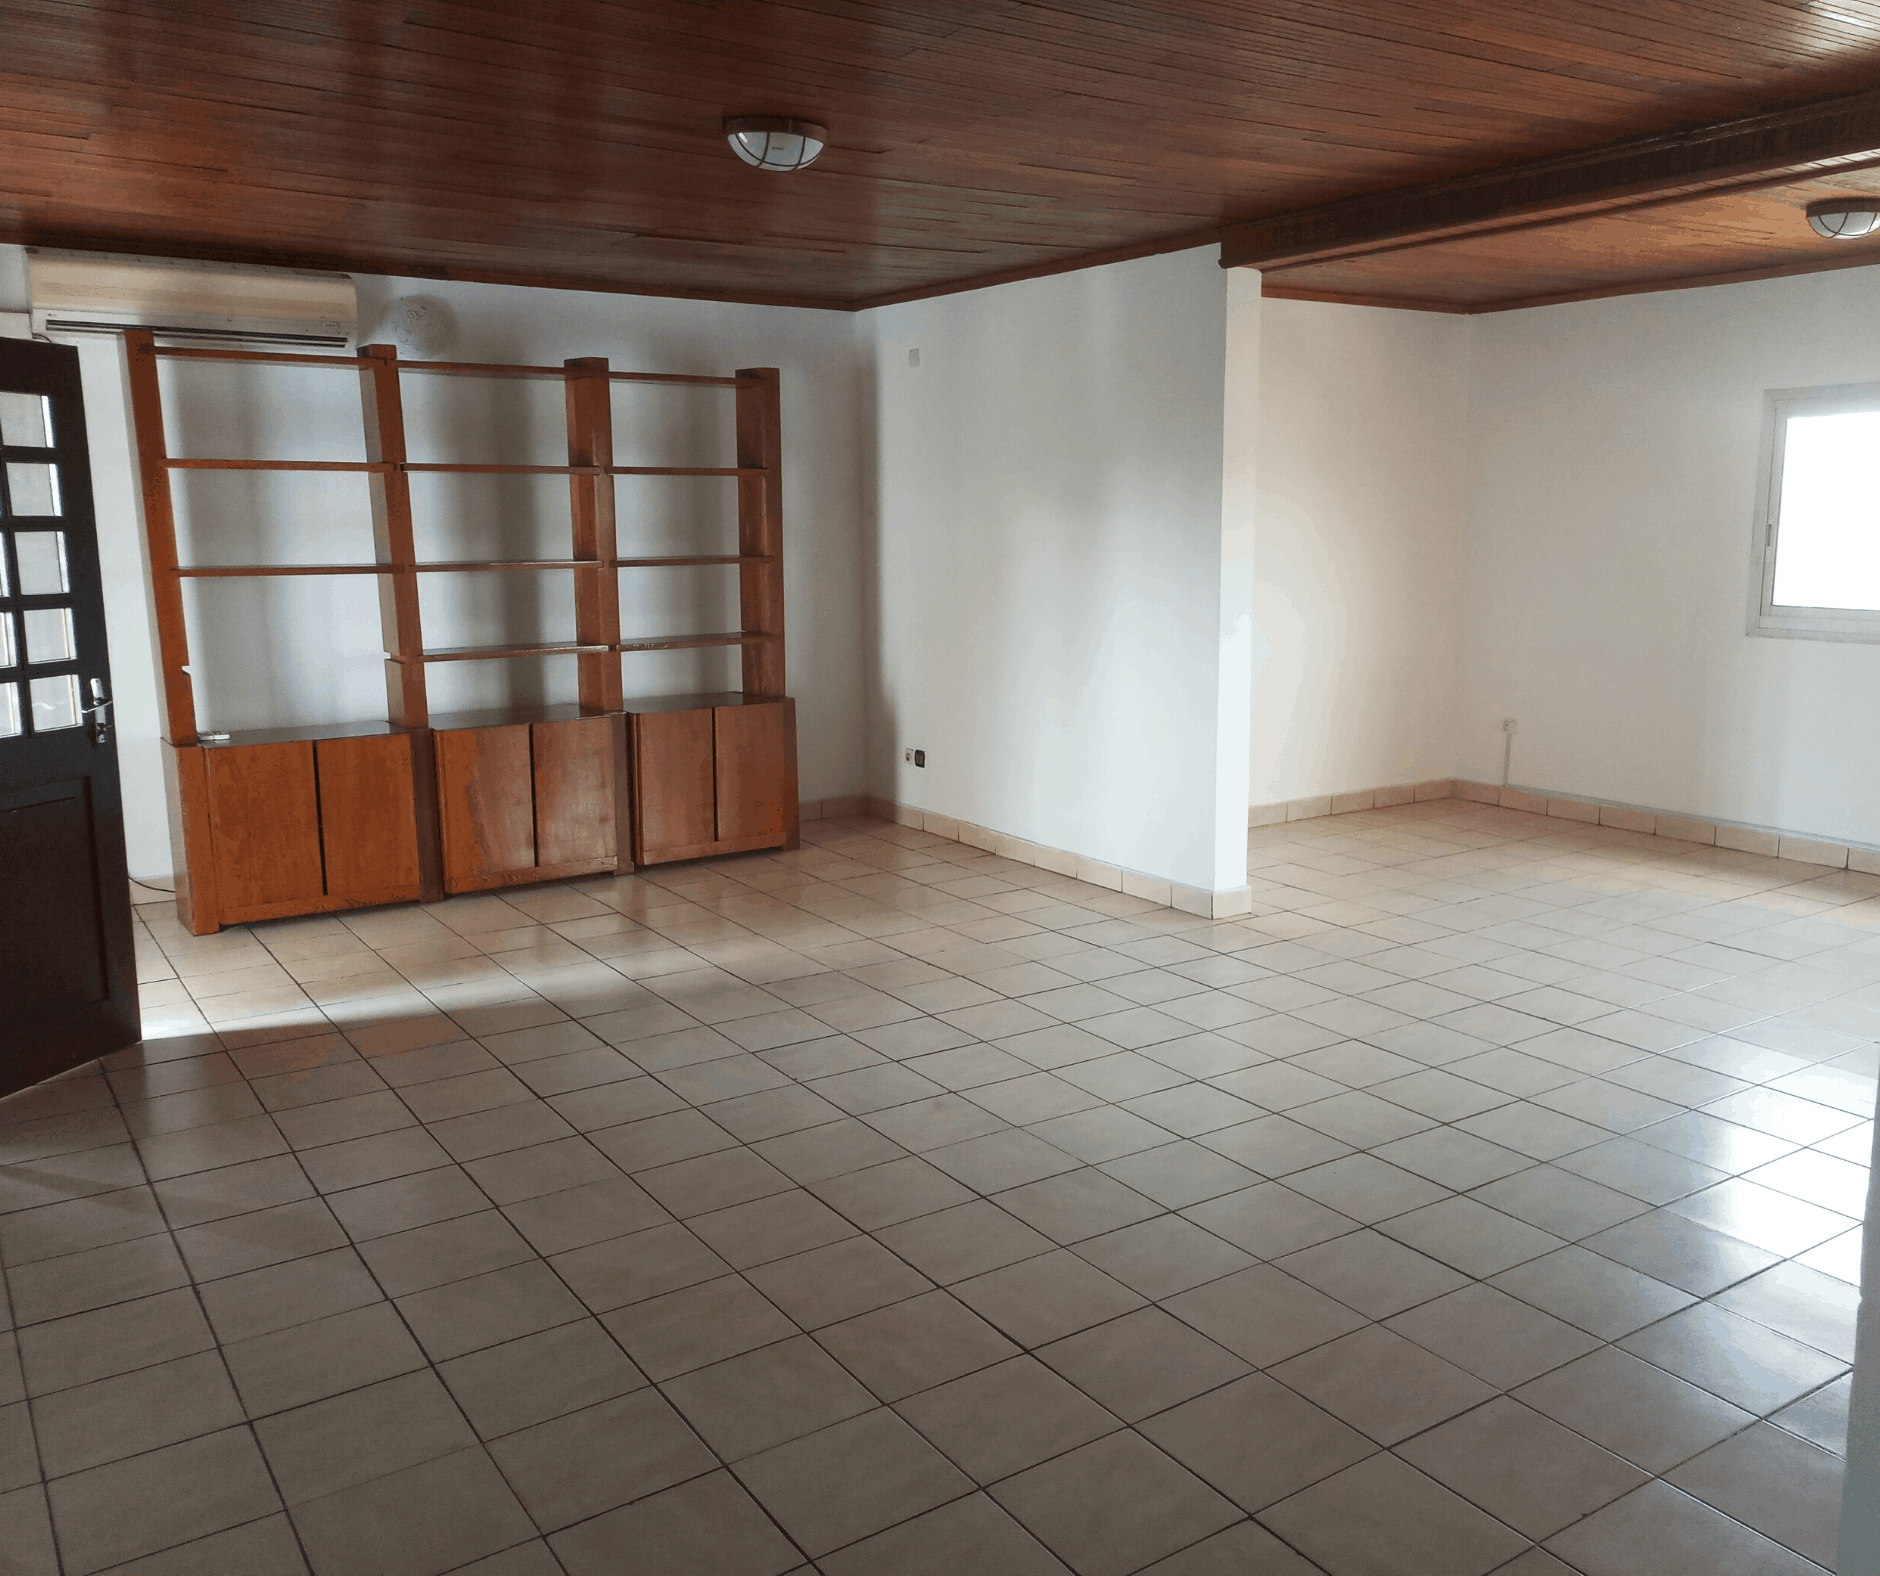 Apartment to rent - Douala, Bonapriso, Hydrocarbures - 1 living room(s), 3 bedroom(s), 2 bathroom(s) - 700 000 FCFA / month